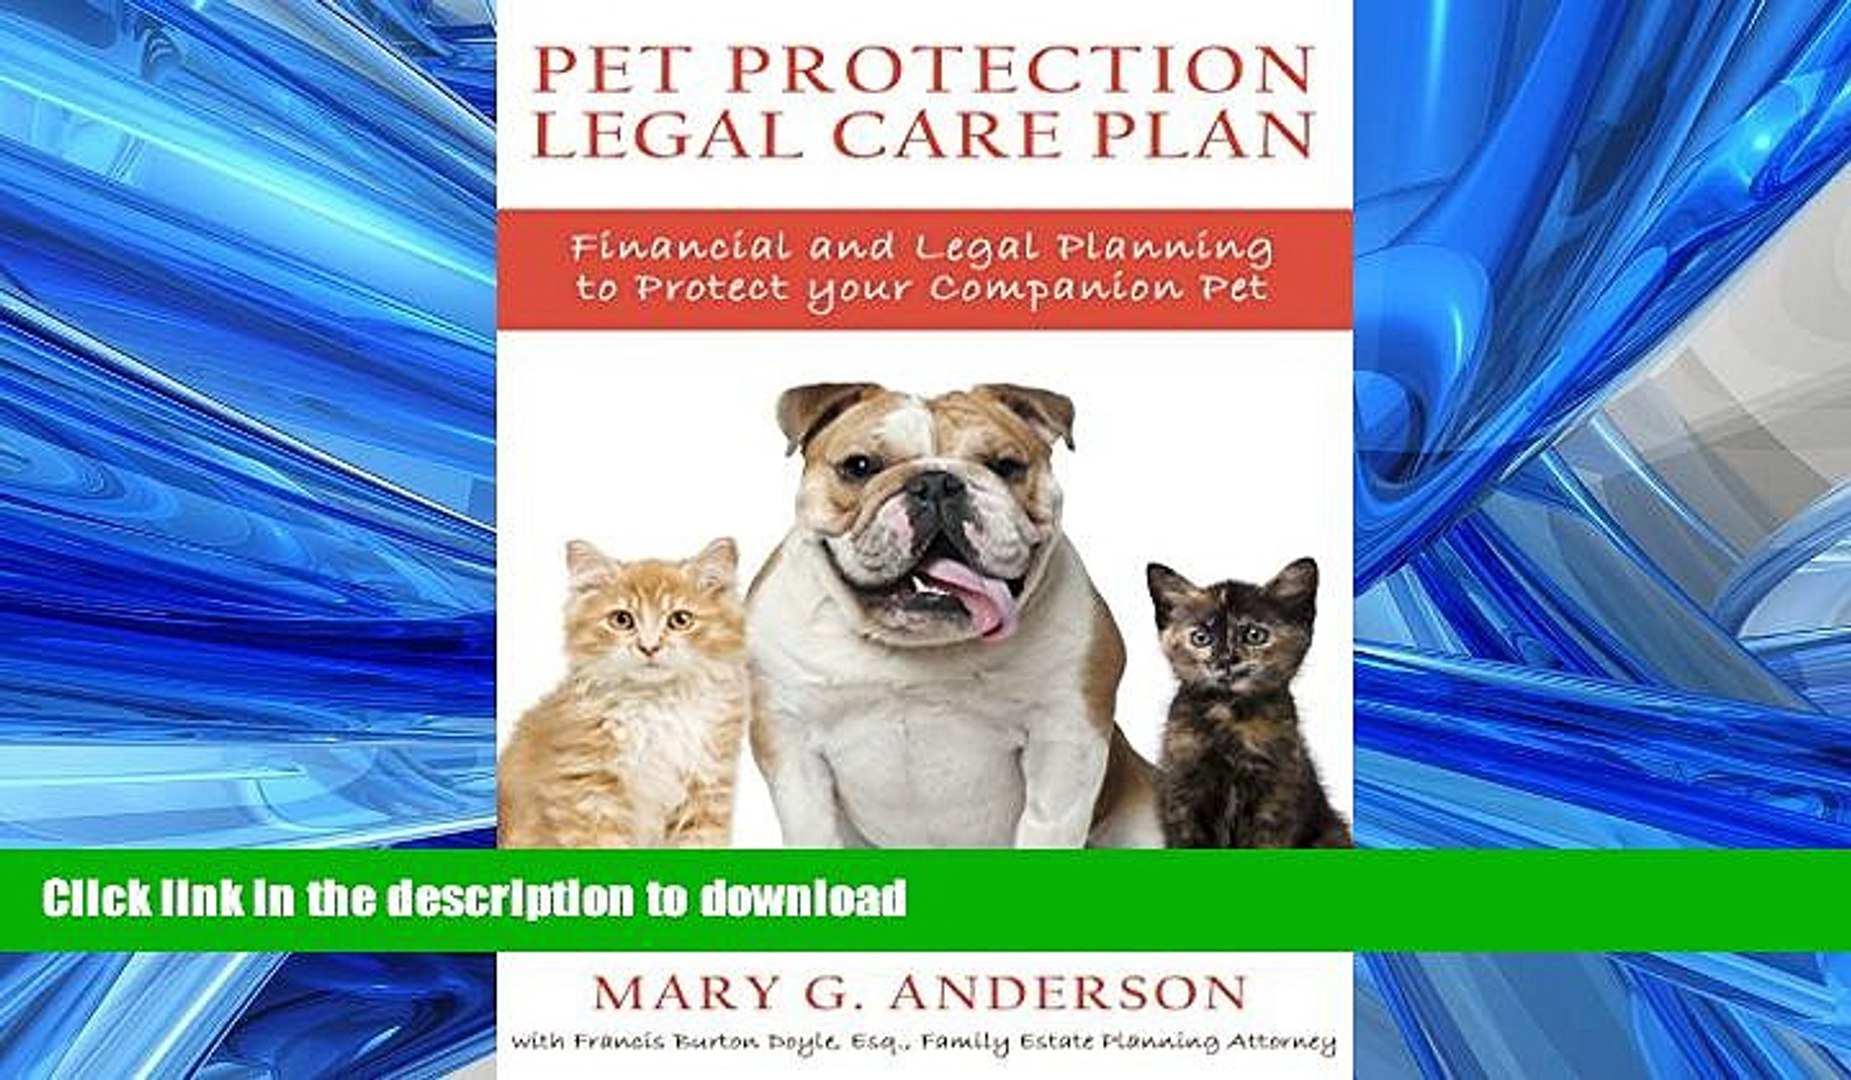 READ  Pet Protection Legal Care Plan: Financial and Legal Planning to Protect Our Companion Pets